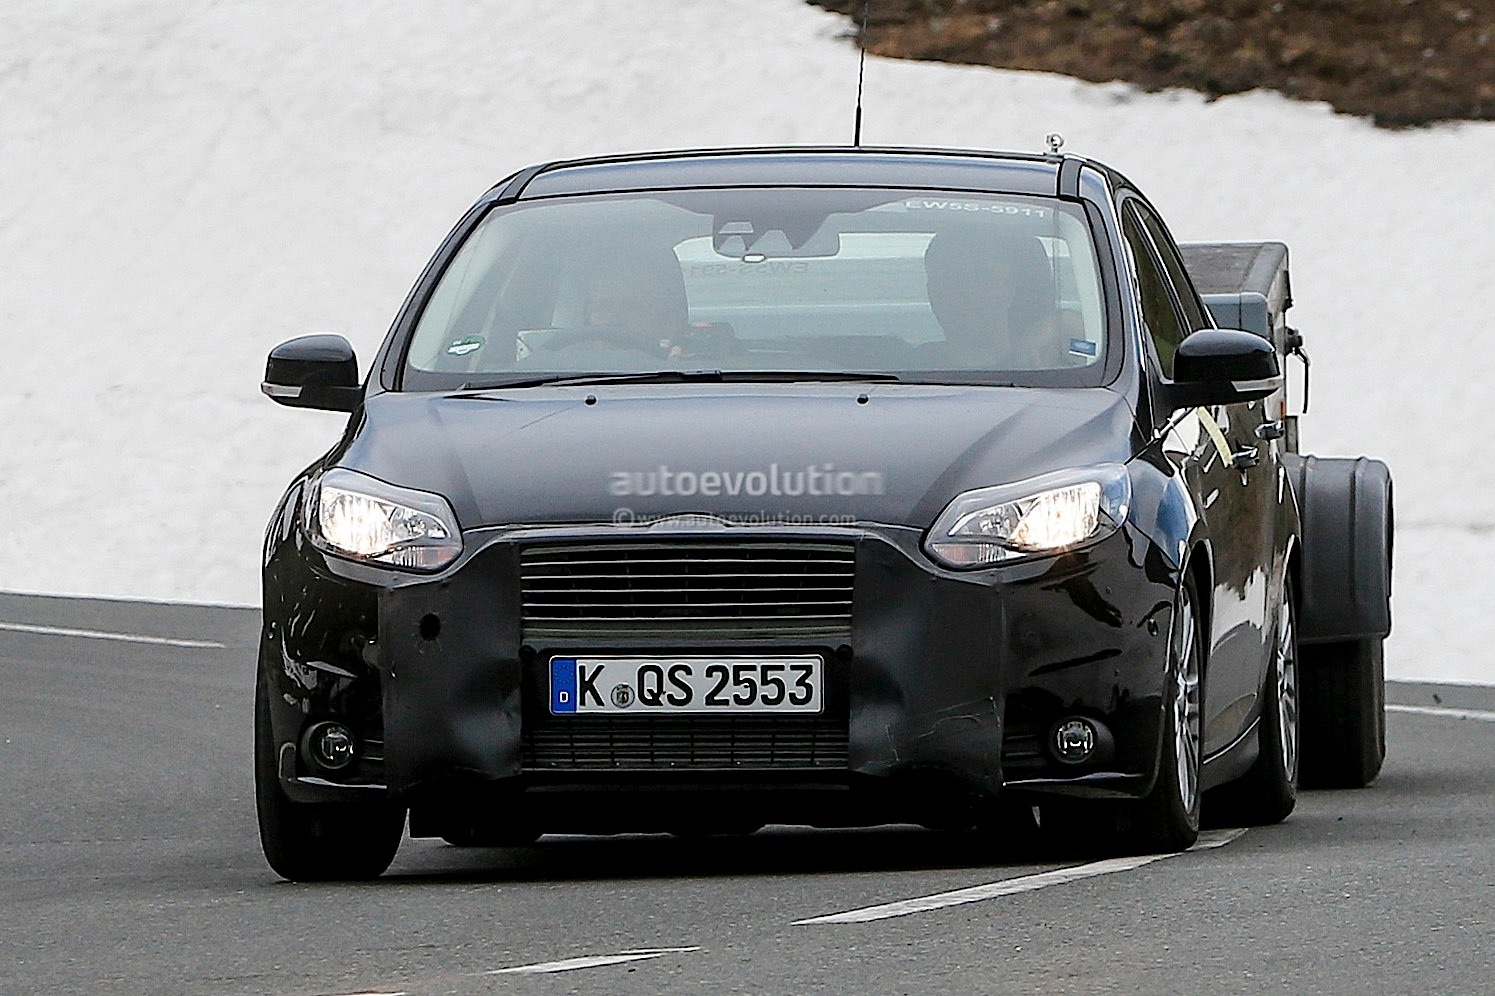 Ford Focus 2014 photo - 7